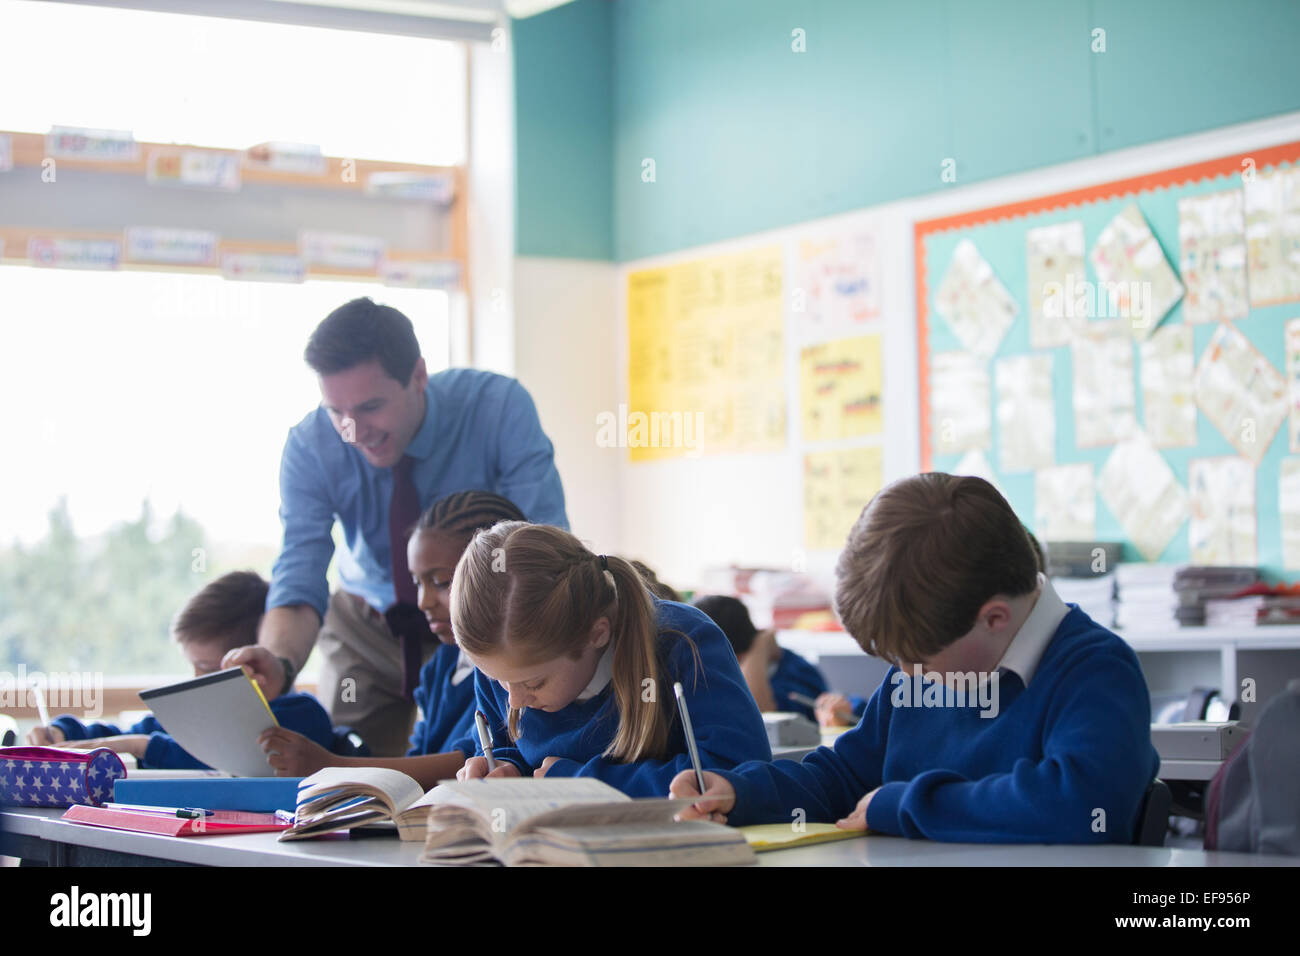 Male teacher assisting elementary school children in classroom during lesson - Stock Image